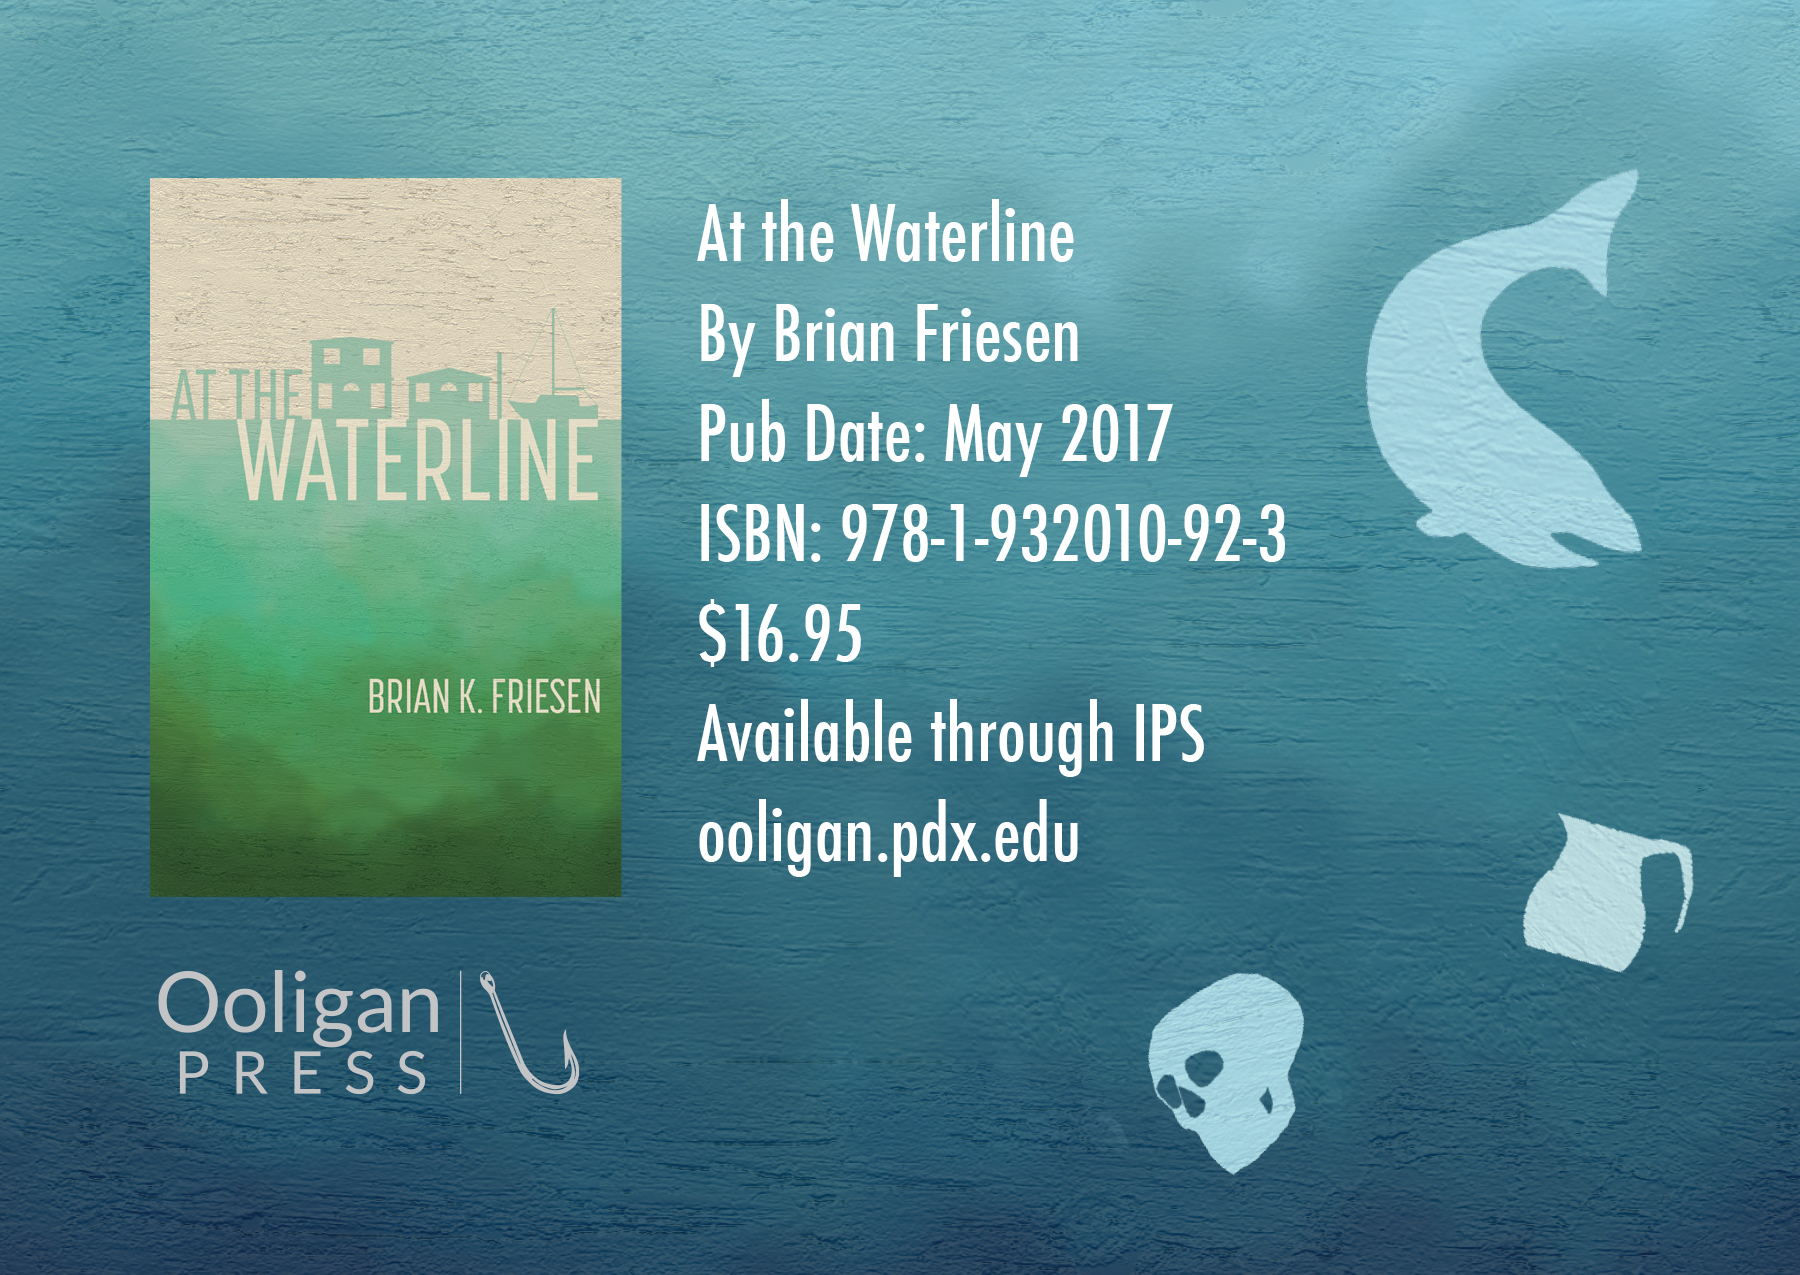 POSTCARD FOR AT THE WATERLINE